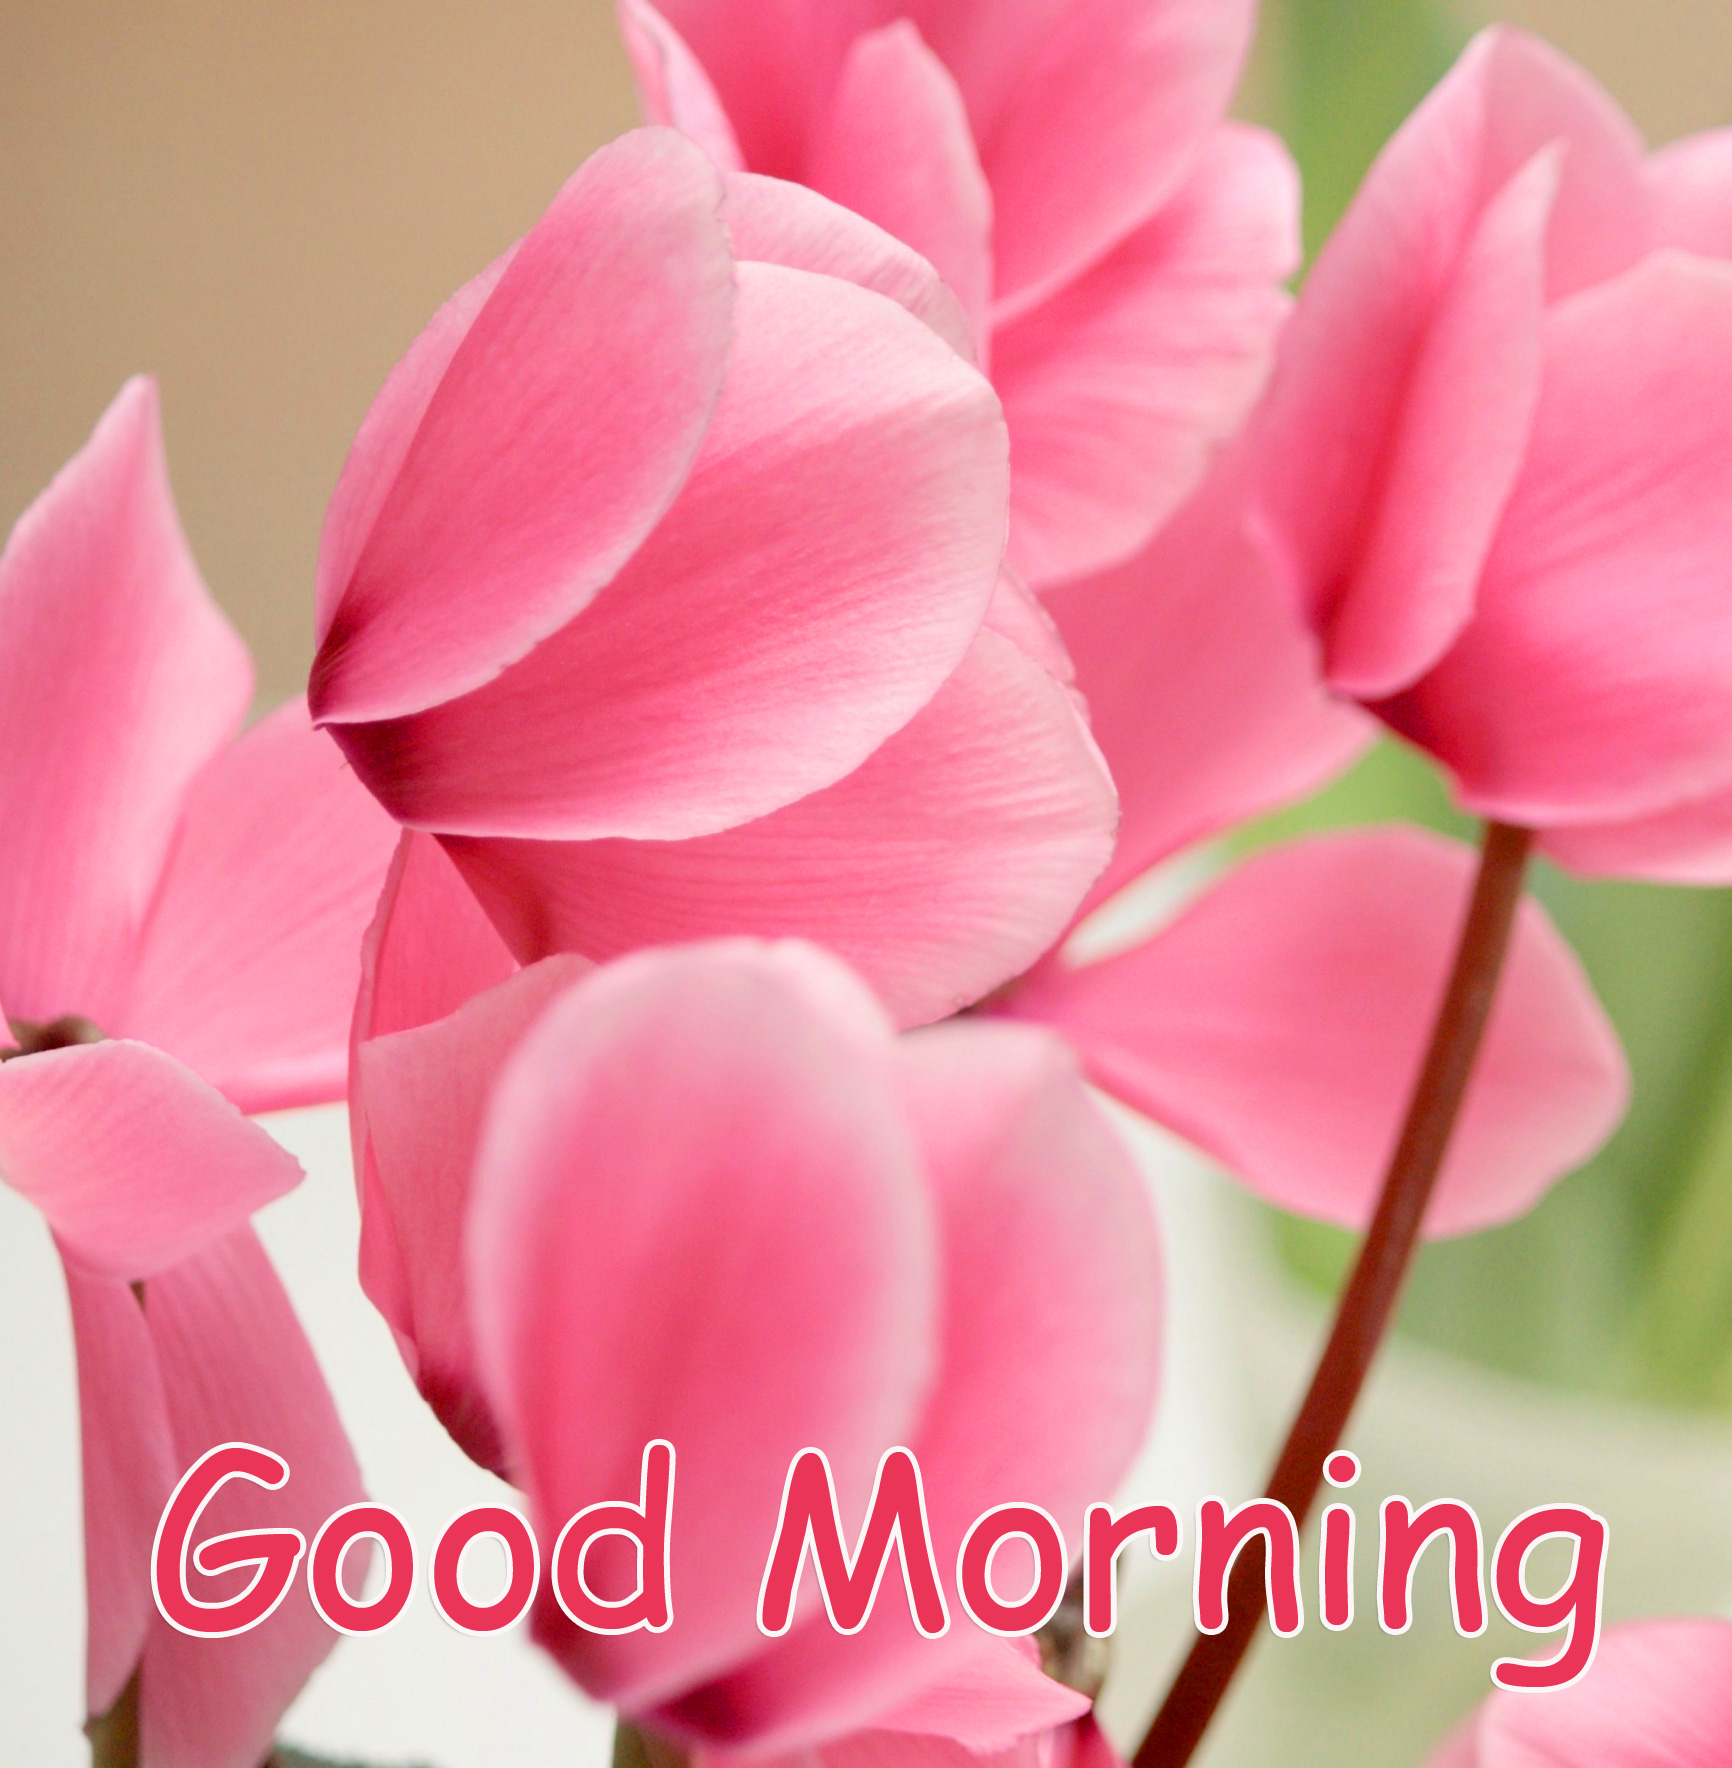 Pink Flower Good Morning HD Image